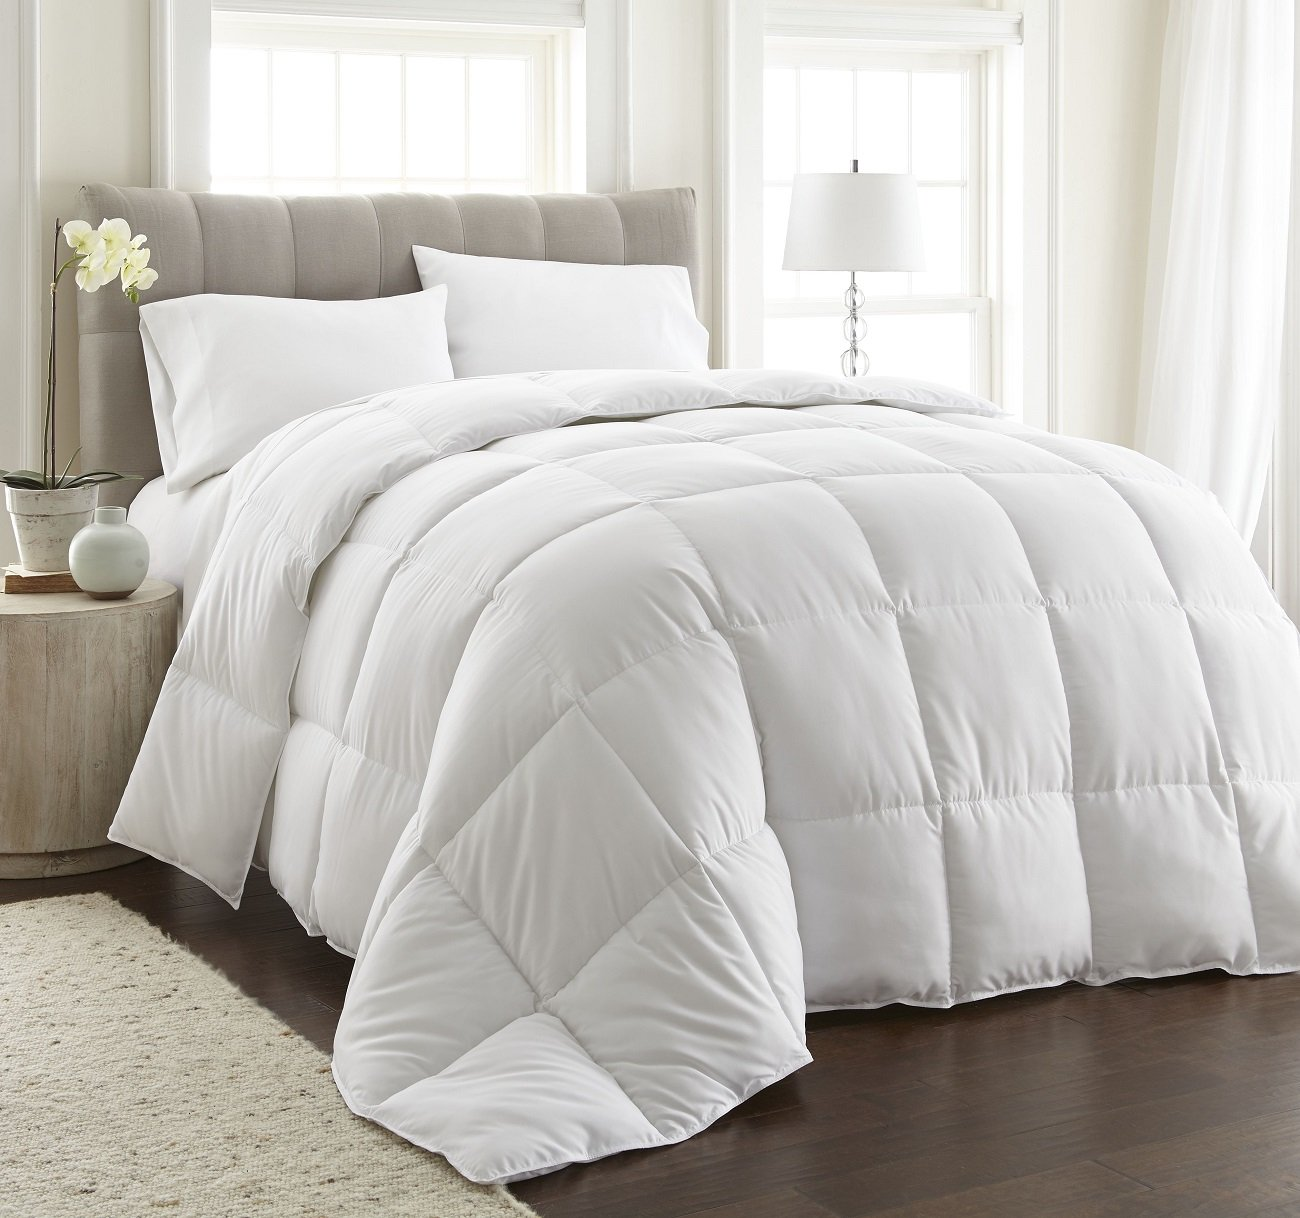 MEDIUM WARMTH White Down Alternative Comforter w/Space Saver Storage Bag, Duvet Insert, Corner Tabs, Piped Edges, Protection Against Dust Mites, Hypoallergenic, Allergy Free (Medium Warmth, Twin XL)